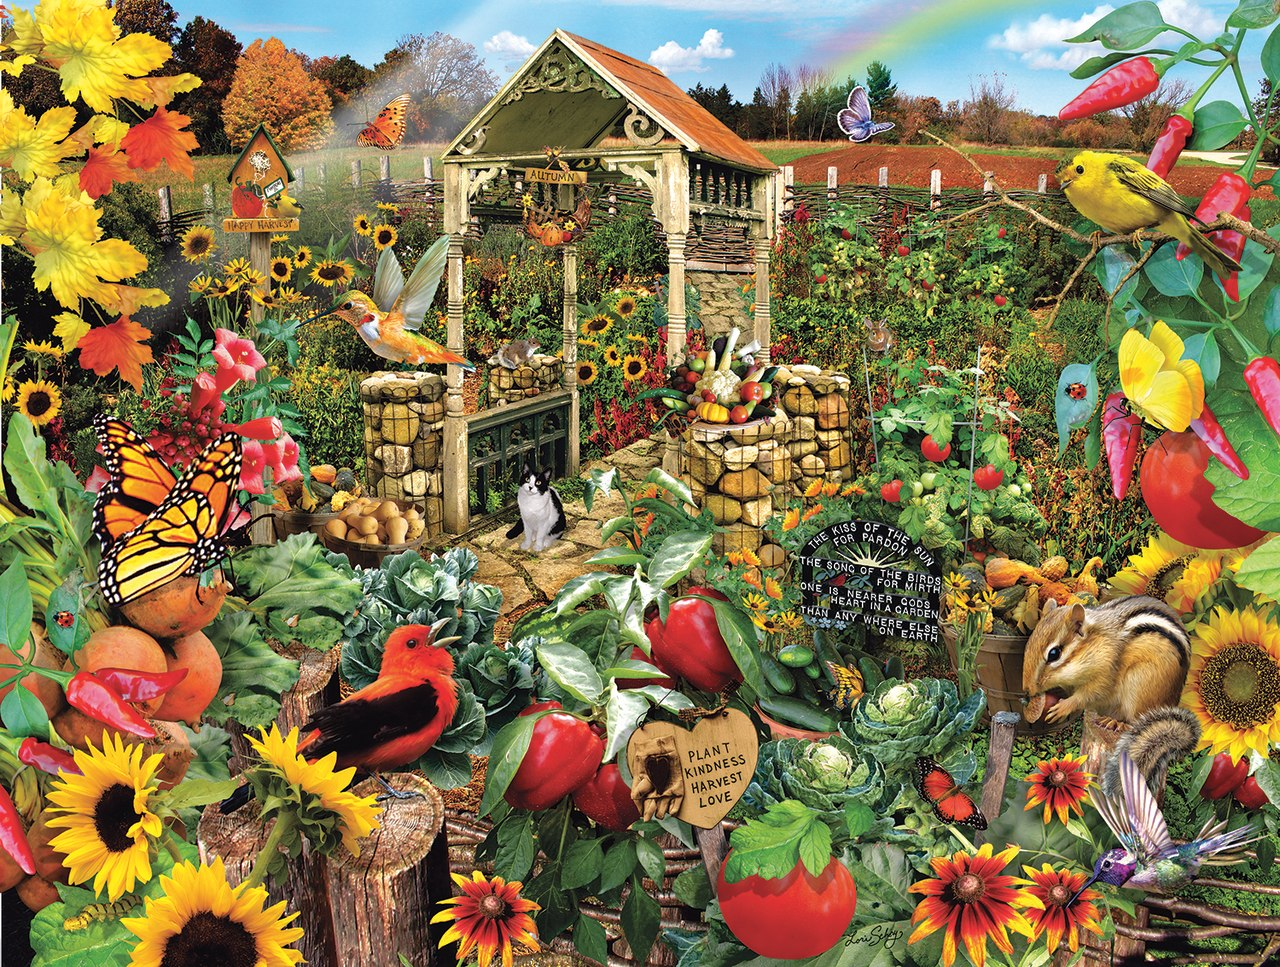 Community Garden - 500pc Jigsaw Puzzle by Sunsout  			  					NEW